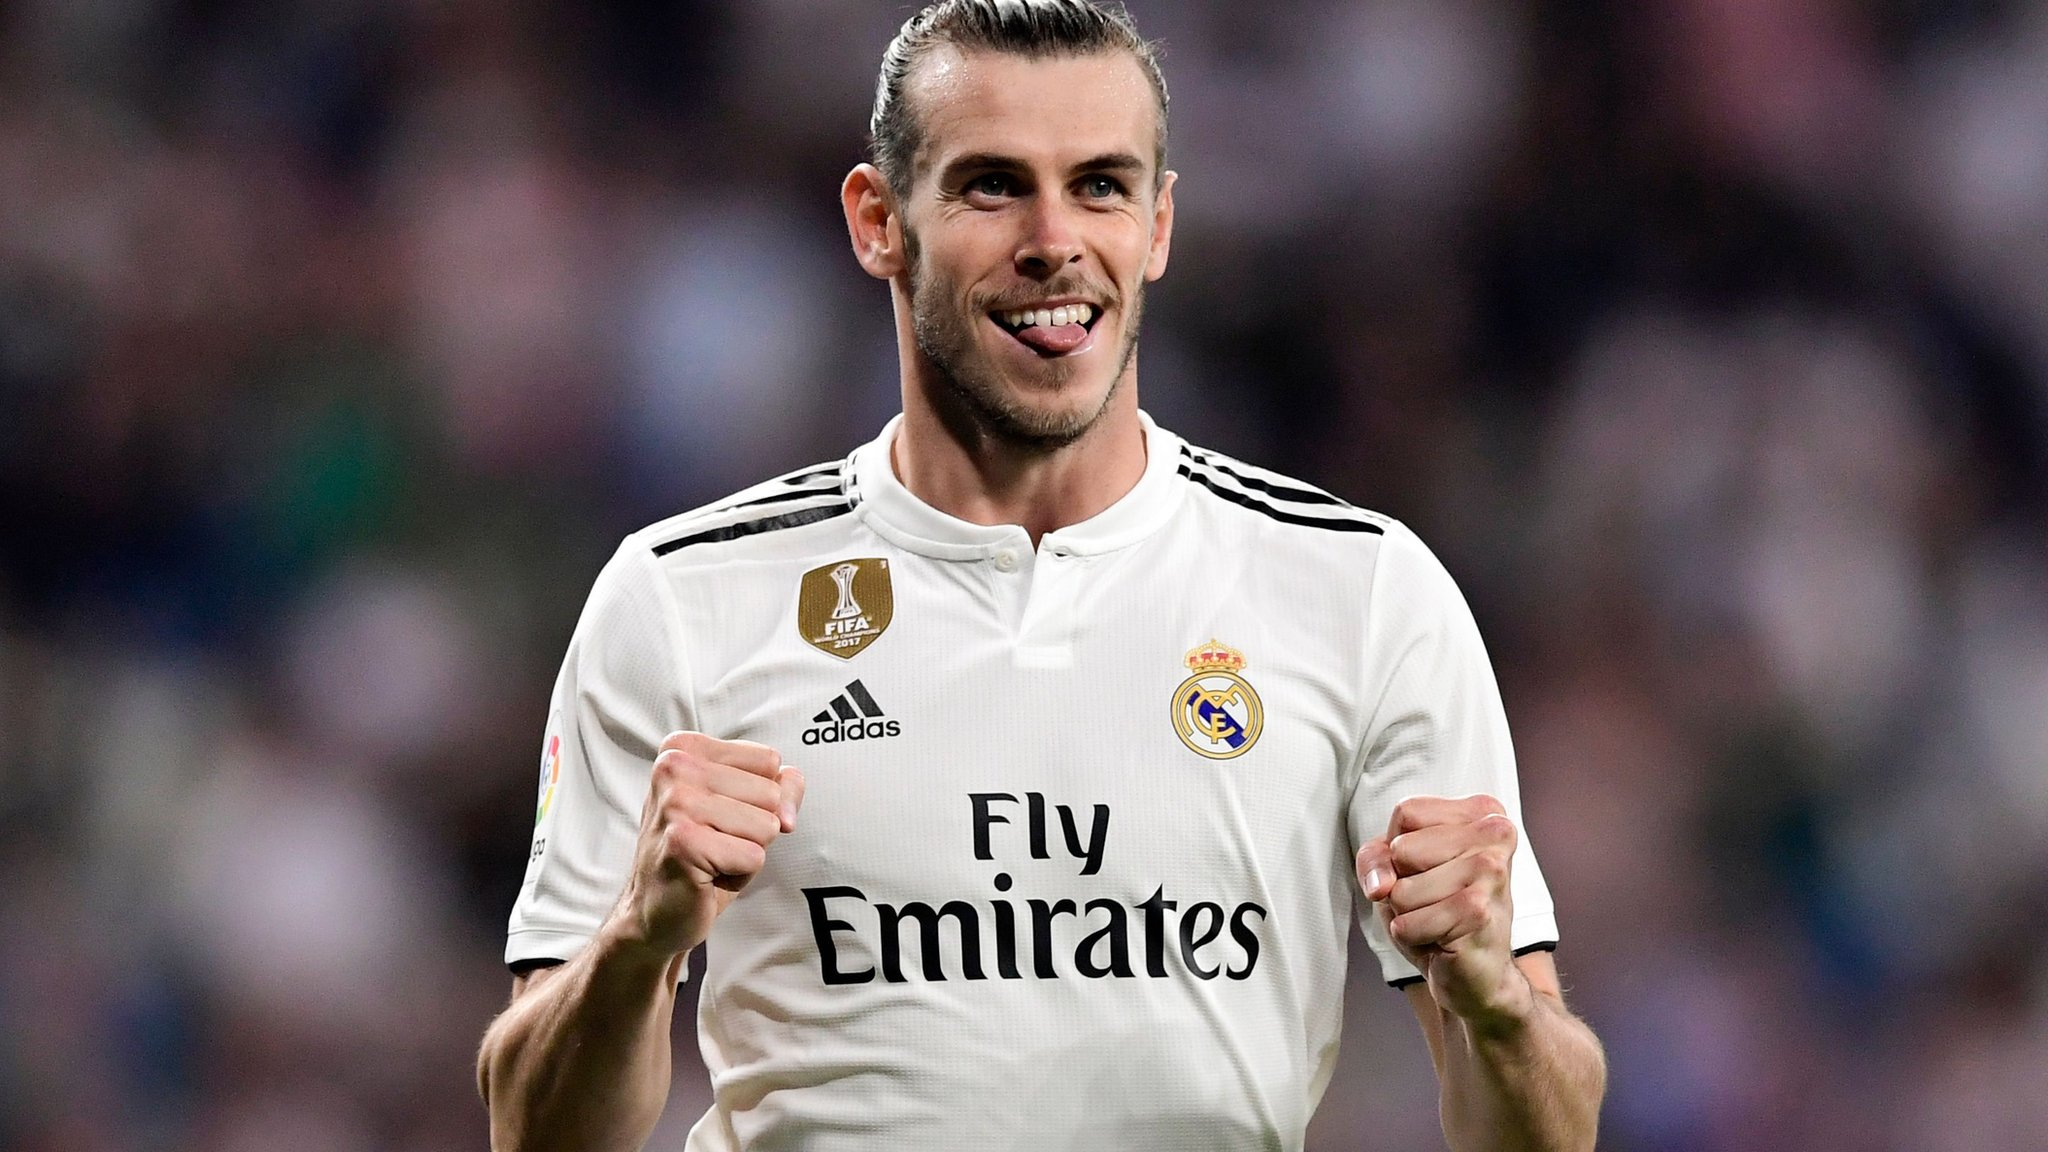 Bale scores as Real win opening La Liga match